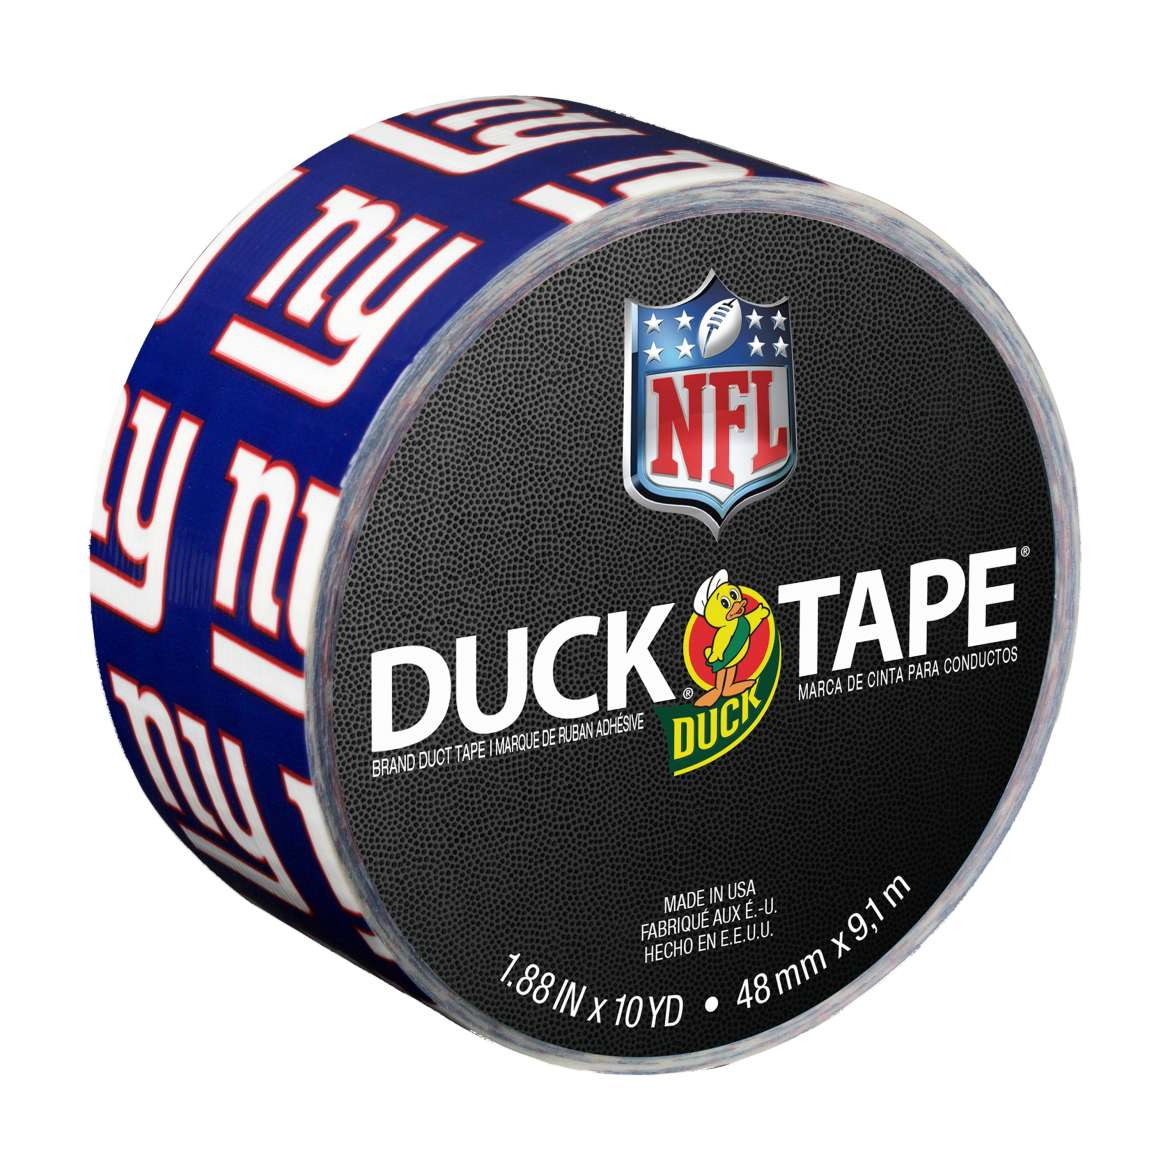 "Duck Brand Duct Tape, NFL Duck Tape, 1.88"" x 10 yard, New York Giants"